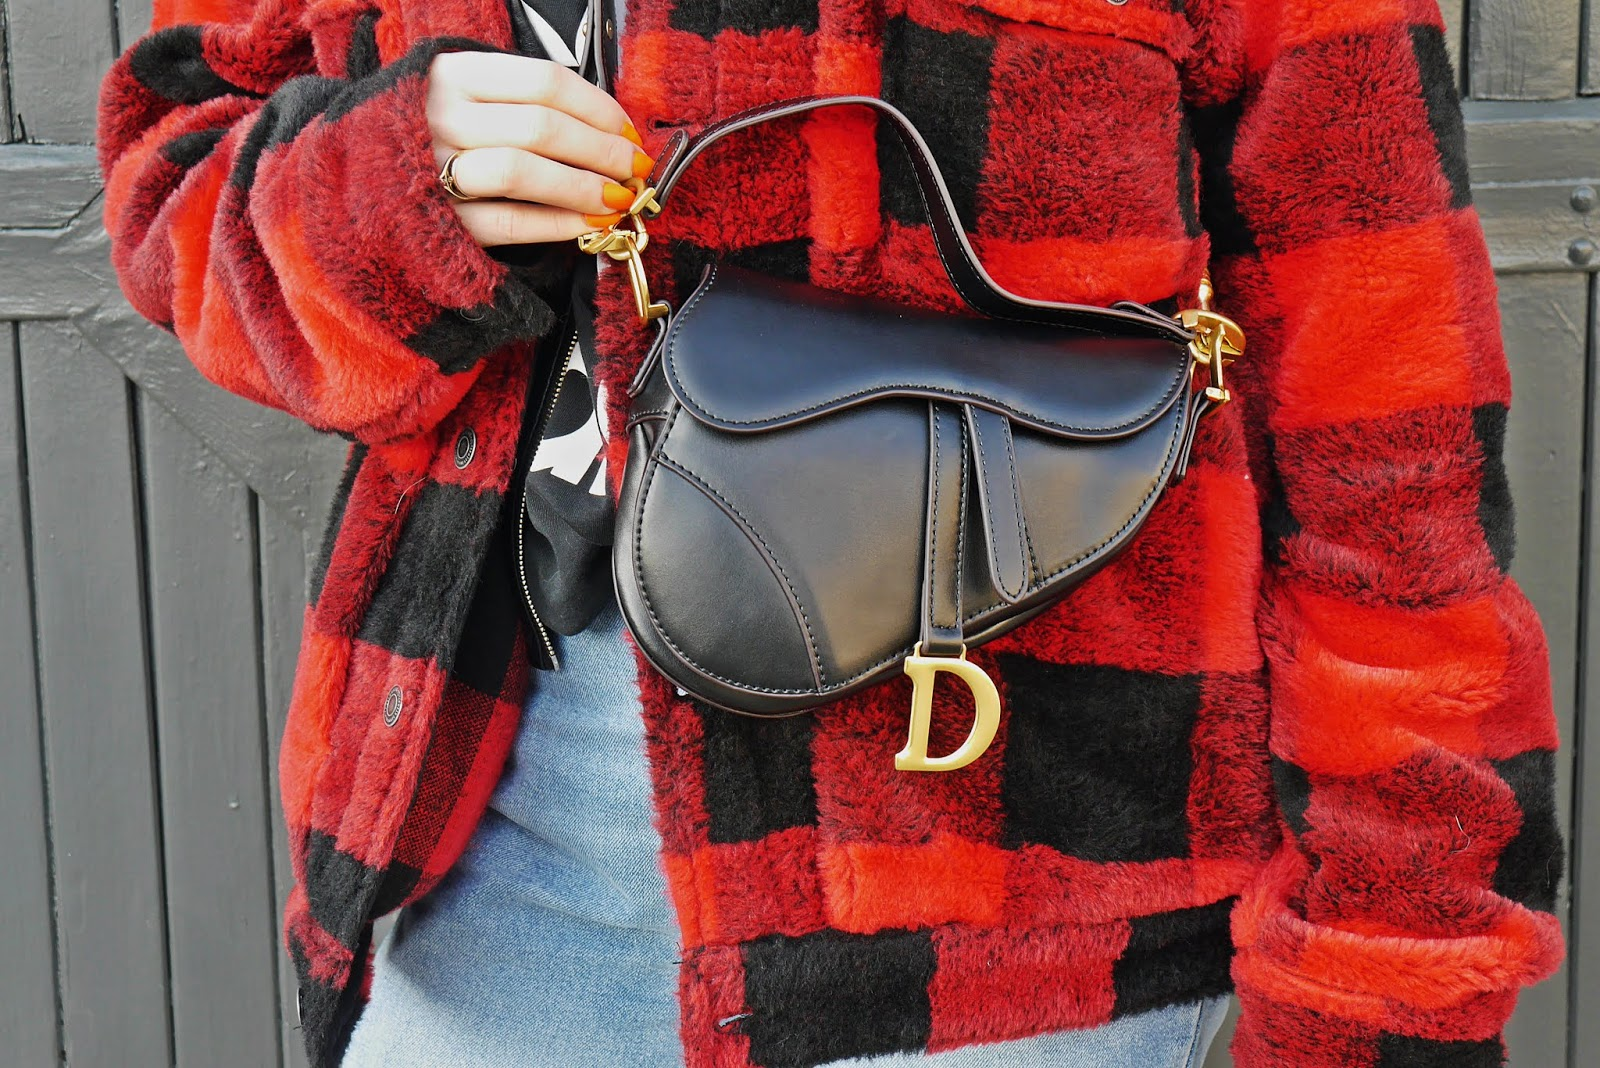 dior saddle bag fake baggining red plaid jacket man woman pull&bear outfit look denim pants superstar adidas earings fashion blogger